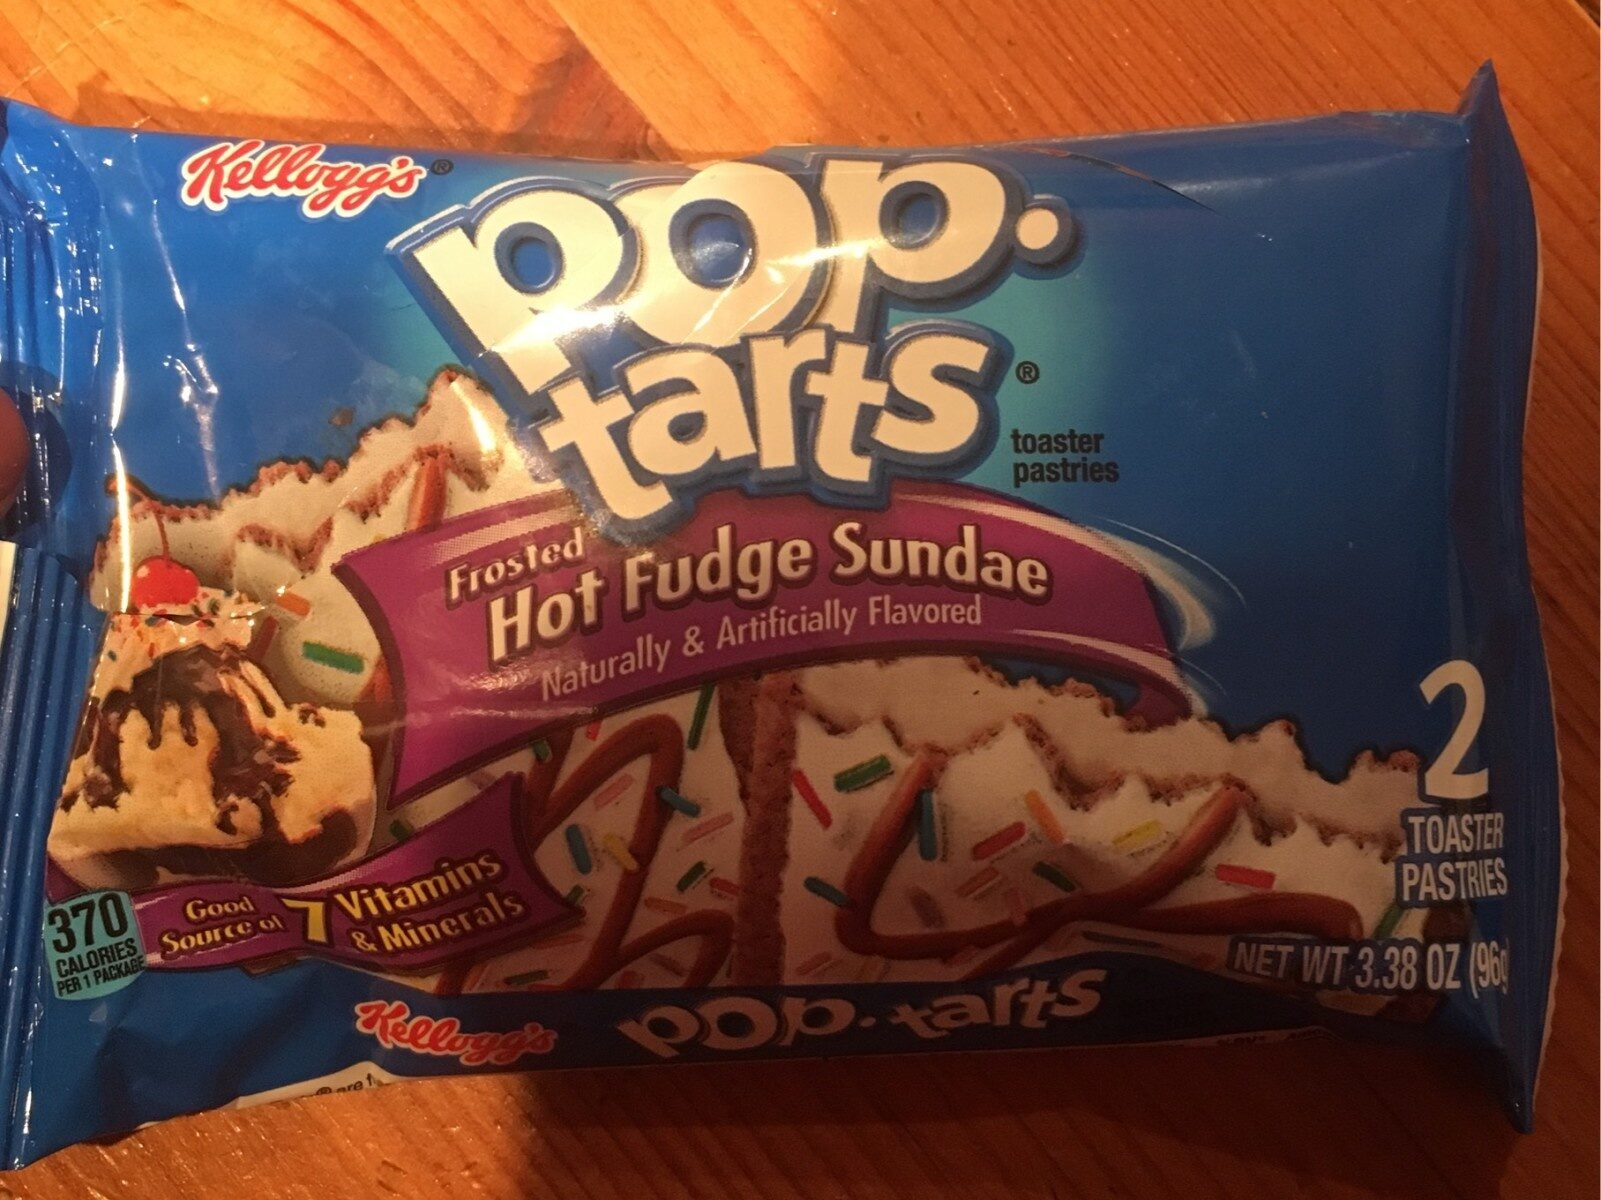 Frosted hot fudge sundae toaster pastries, frosted hot fudge sundae - Product - en